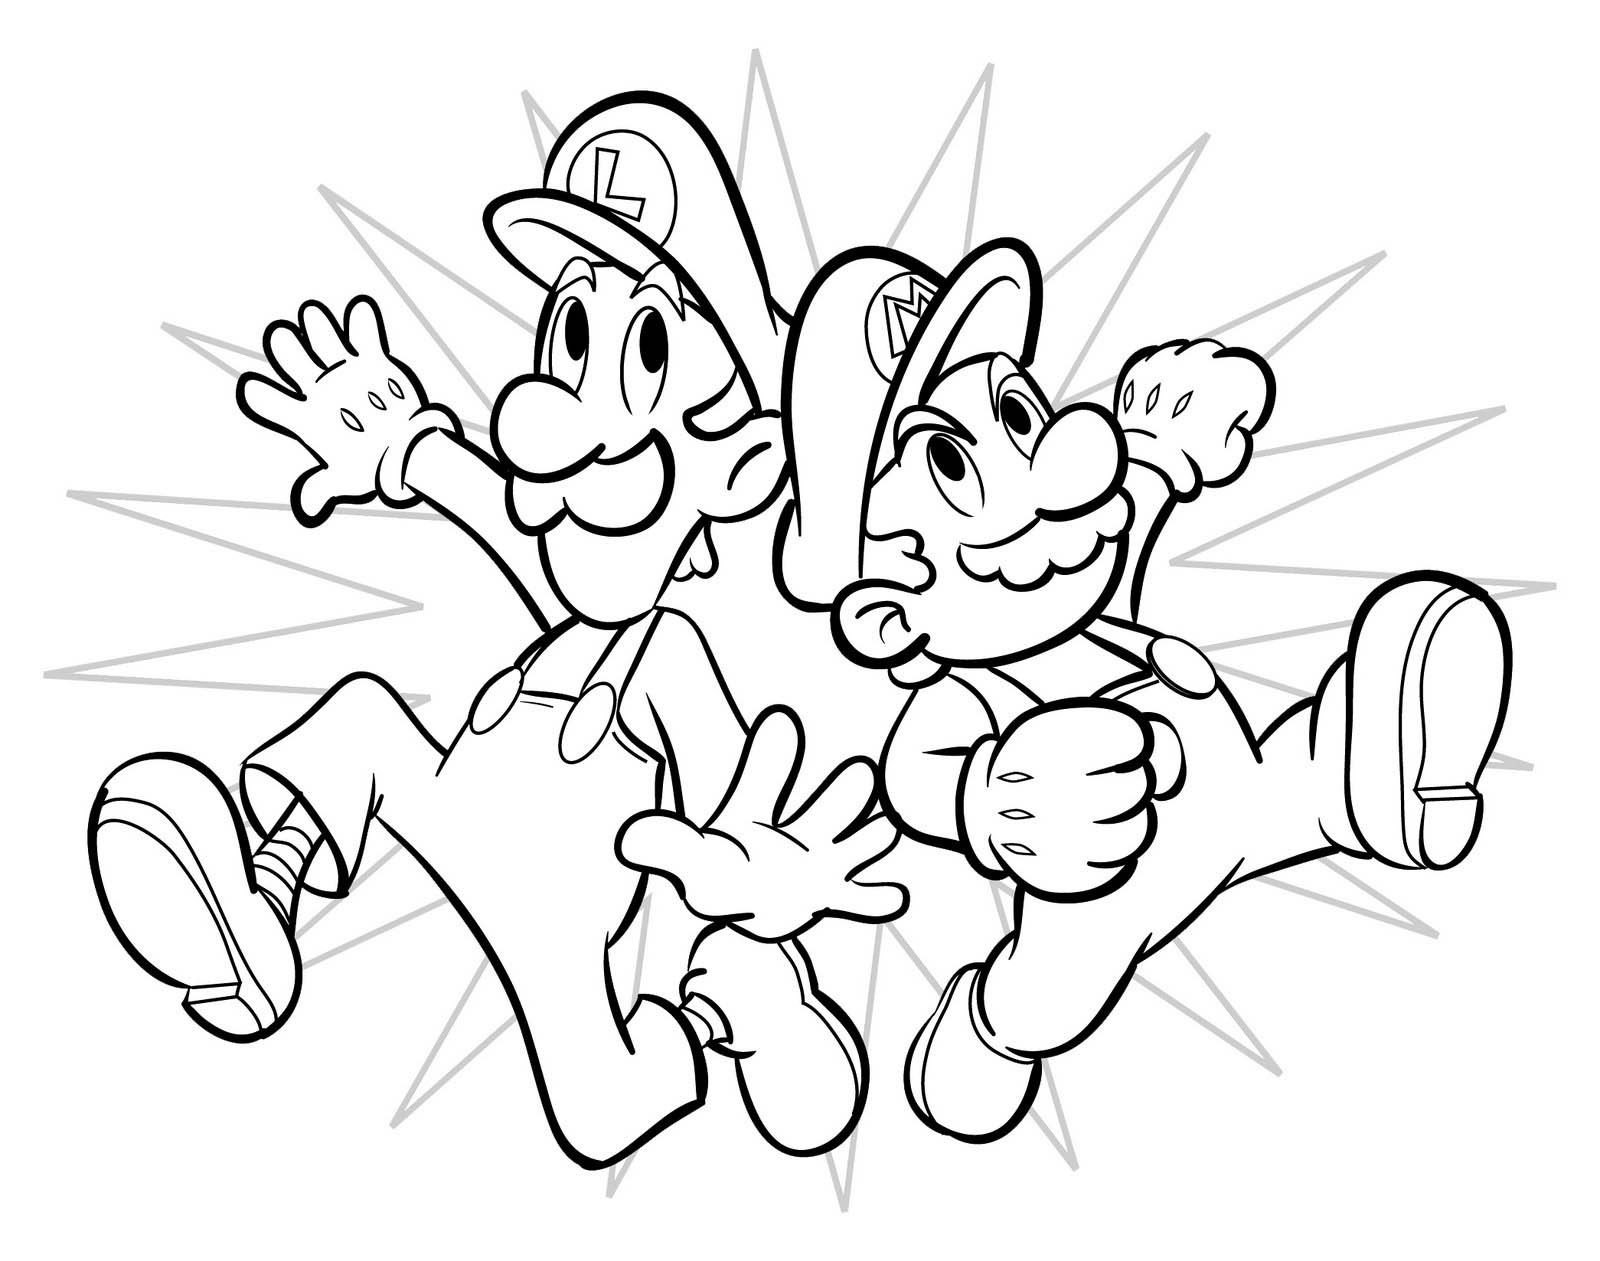 mario coloring pages to print - Childrens Coloring Pages Print